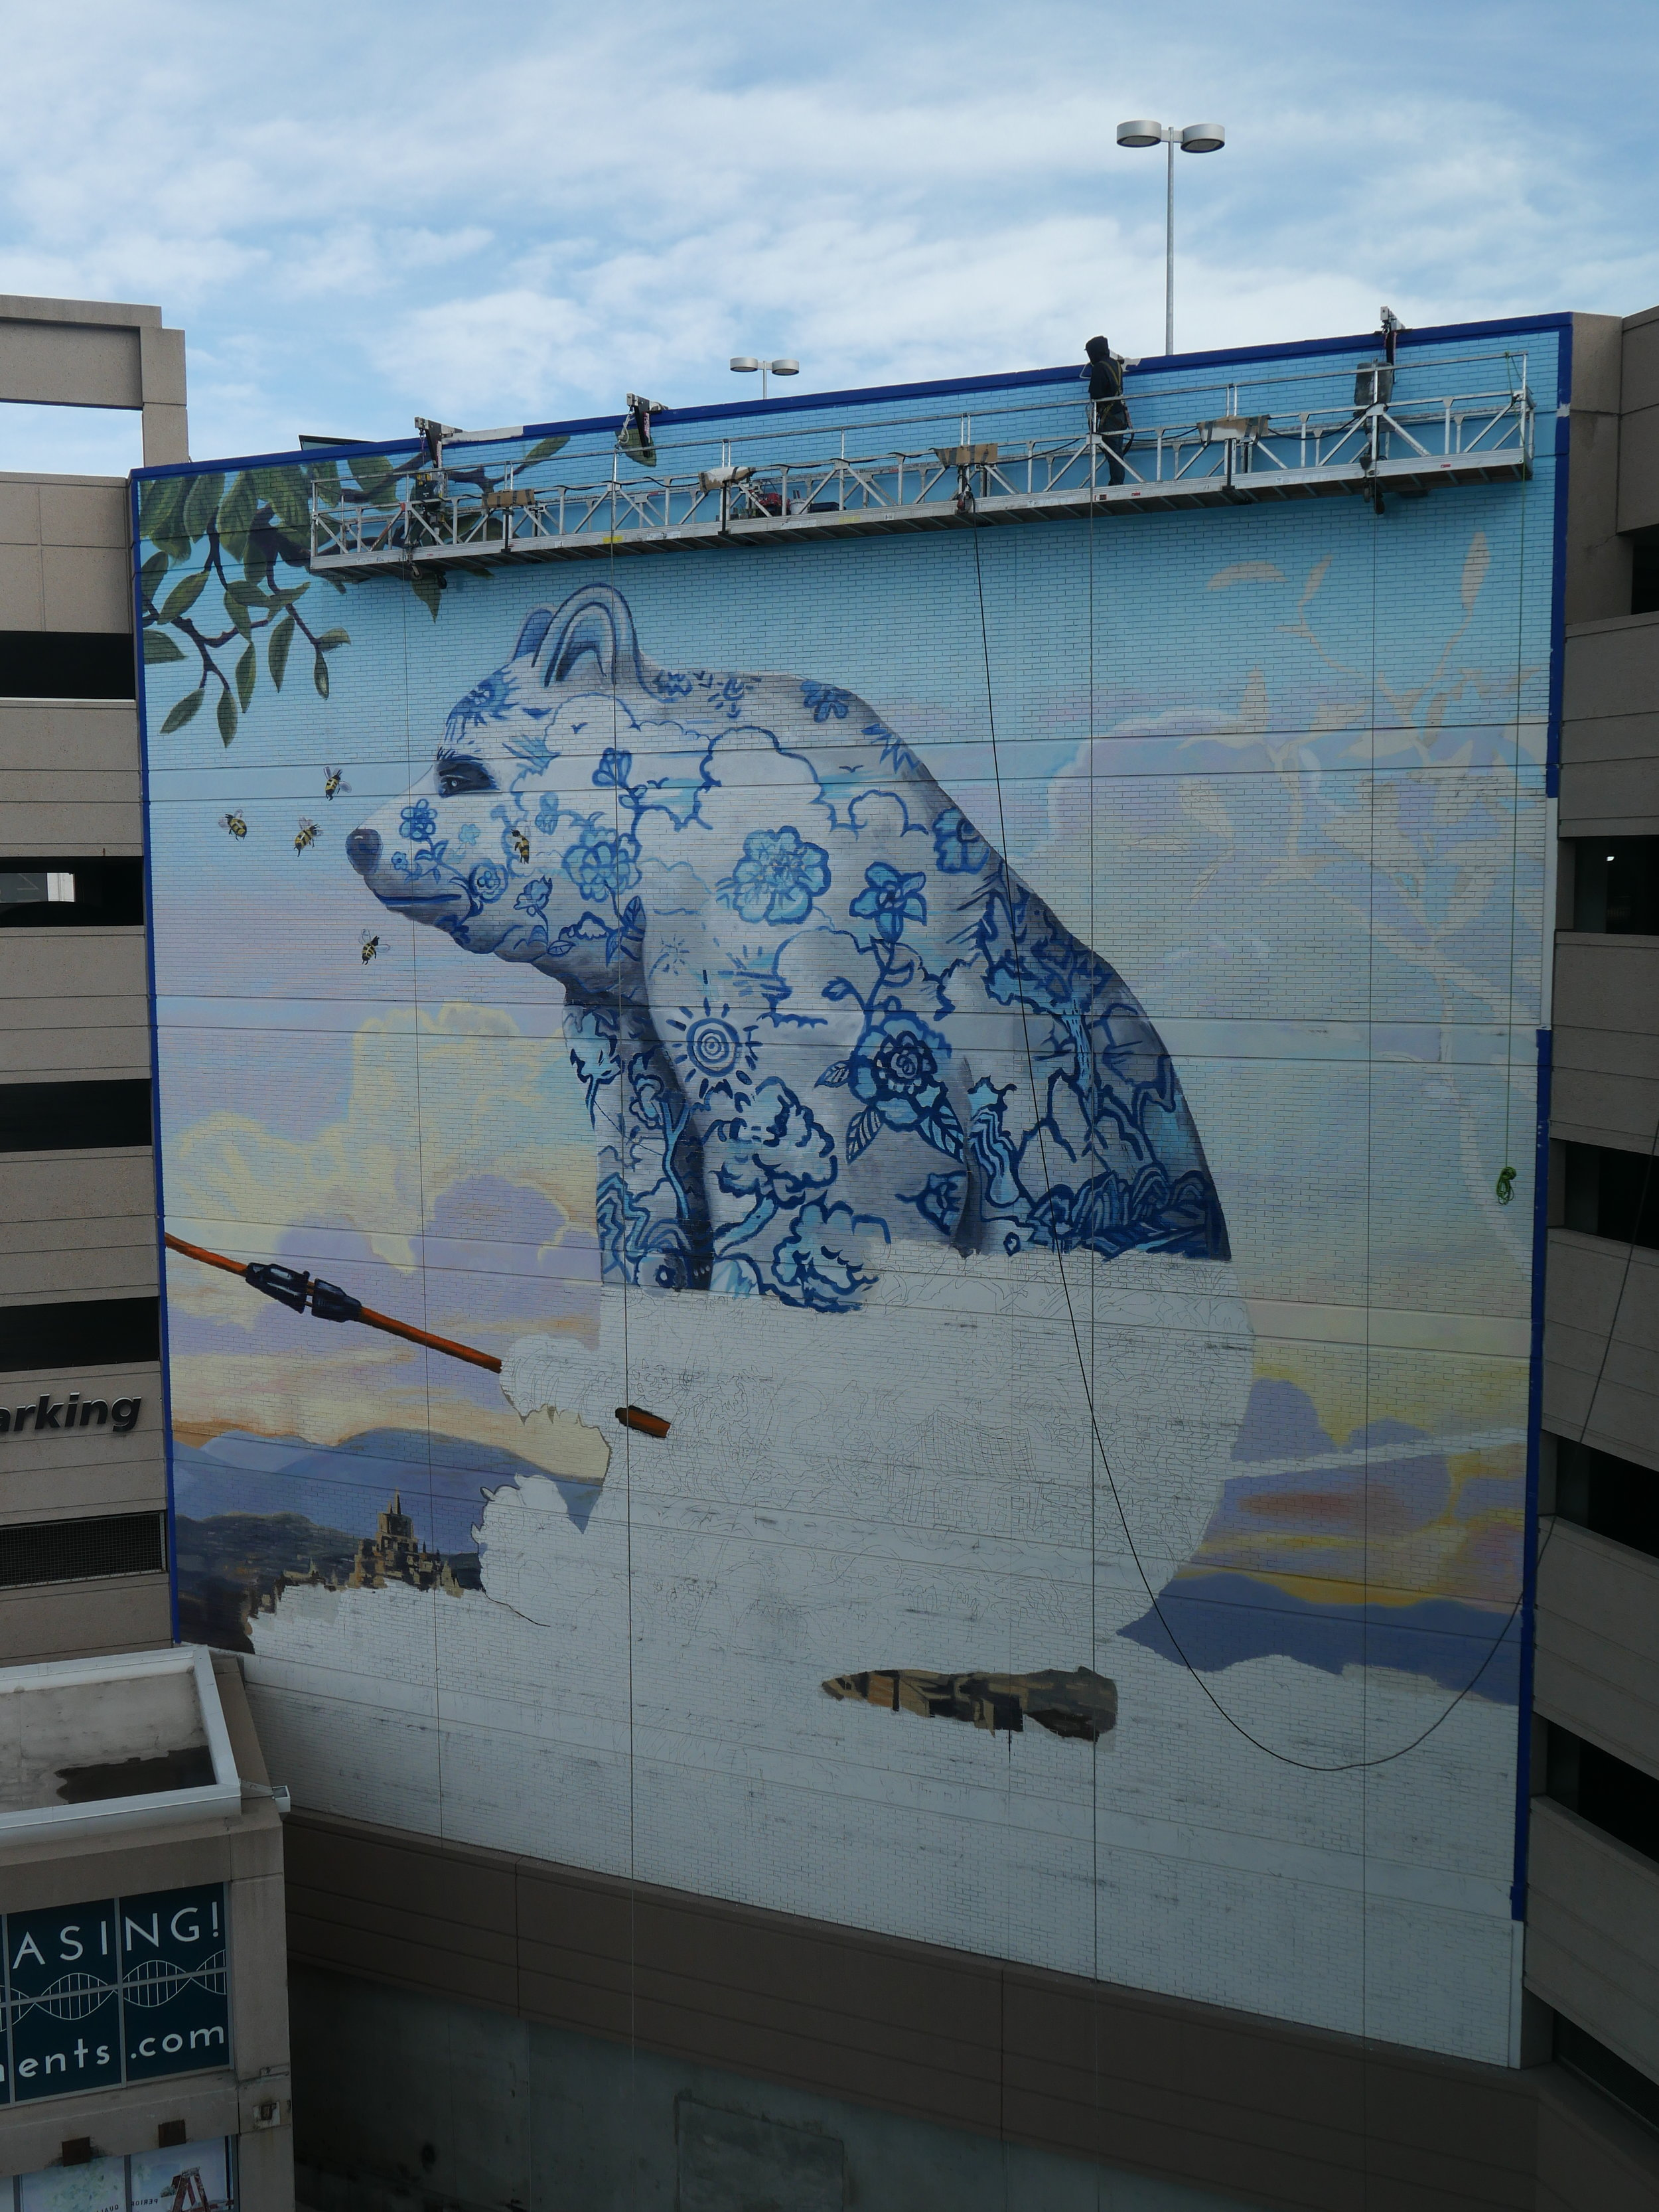 9th and Colorado_kevin sloan_public art services_j grant projects_14.JPG